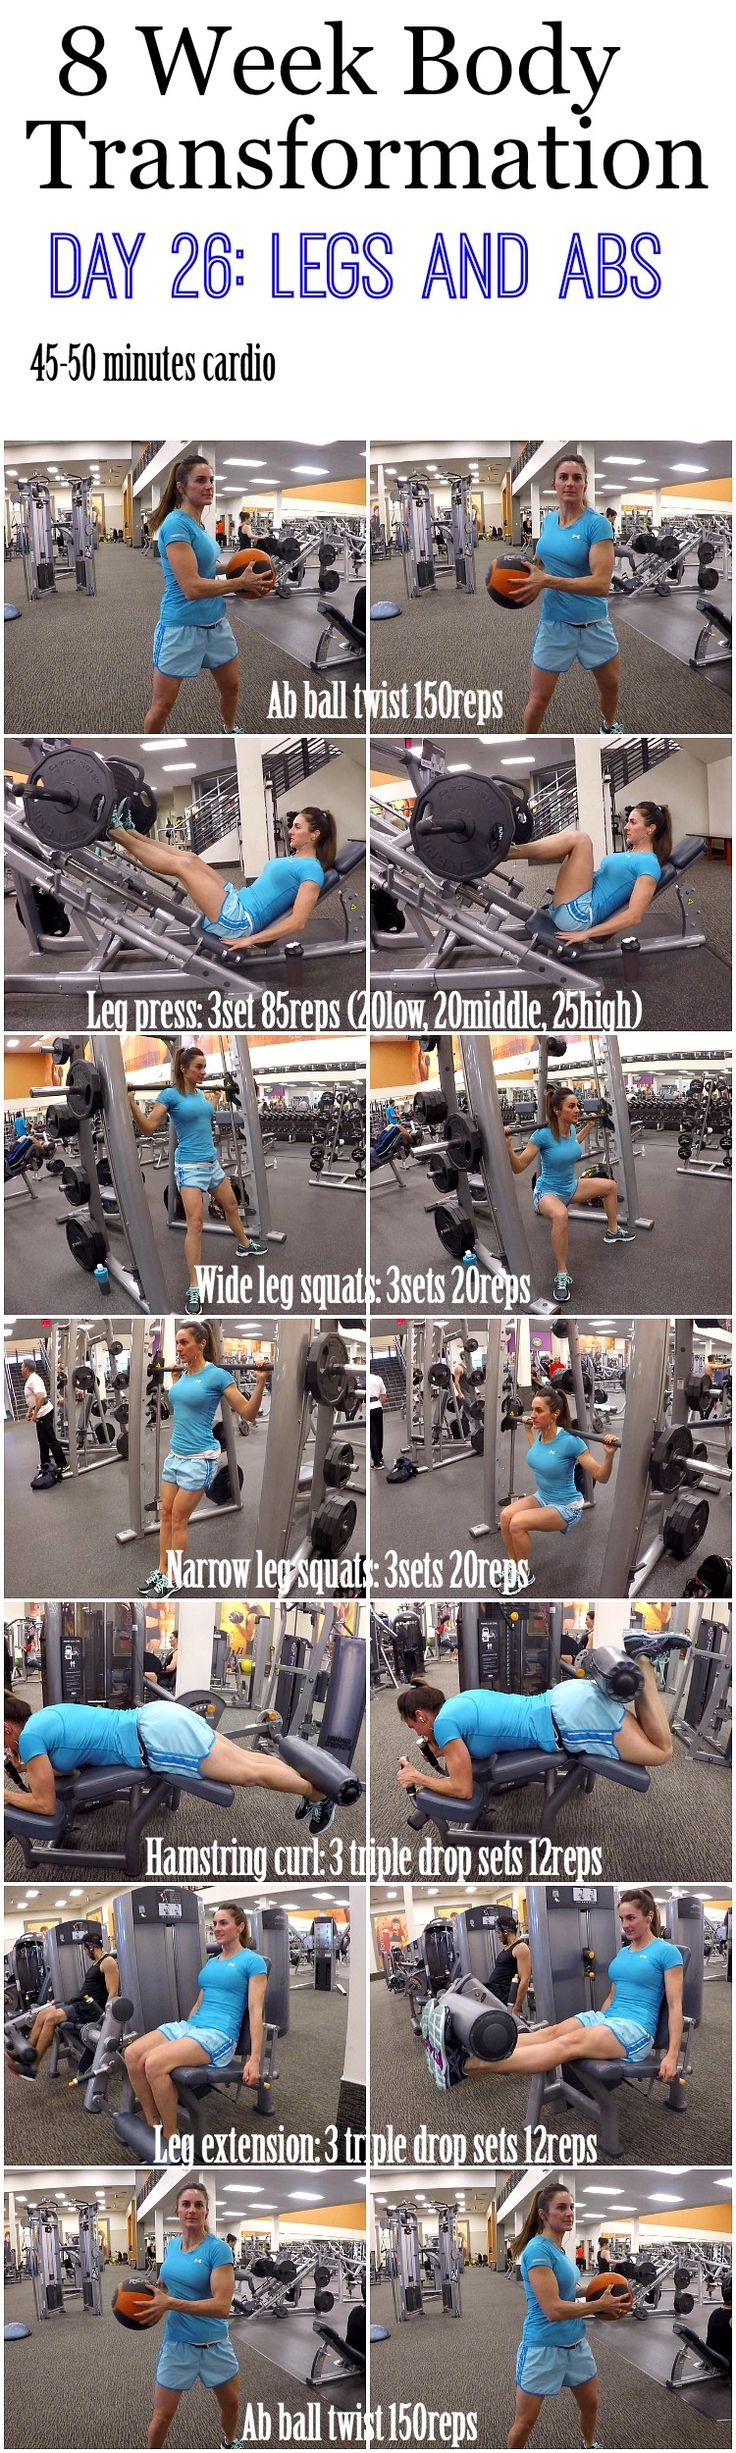 1211 Best Glutes Legs Images On Pinterest Butt Workout Exercise Killer Circuit Totally Dead Superset And Abs Posted By Newhowtolosebellyfatcom